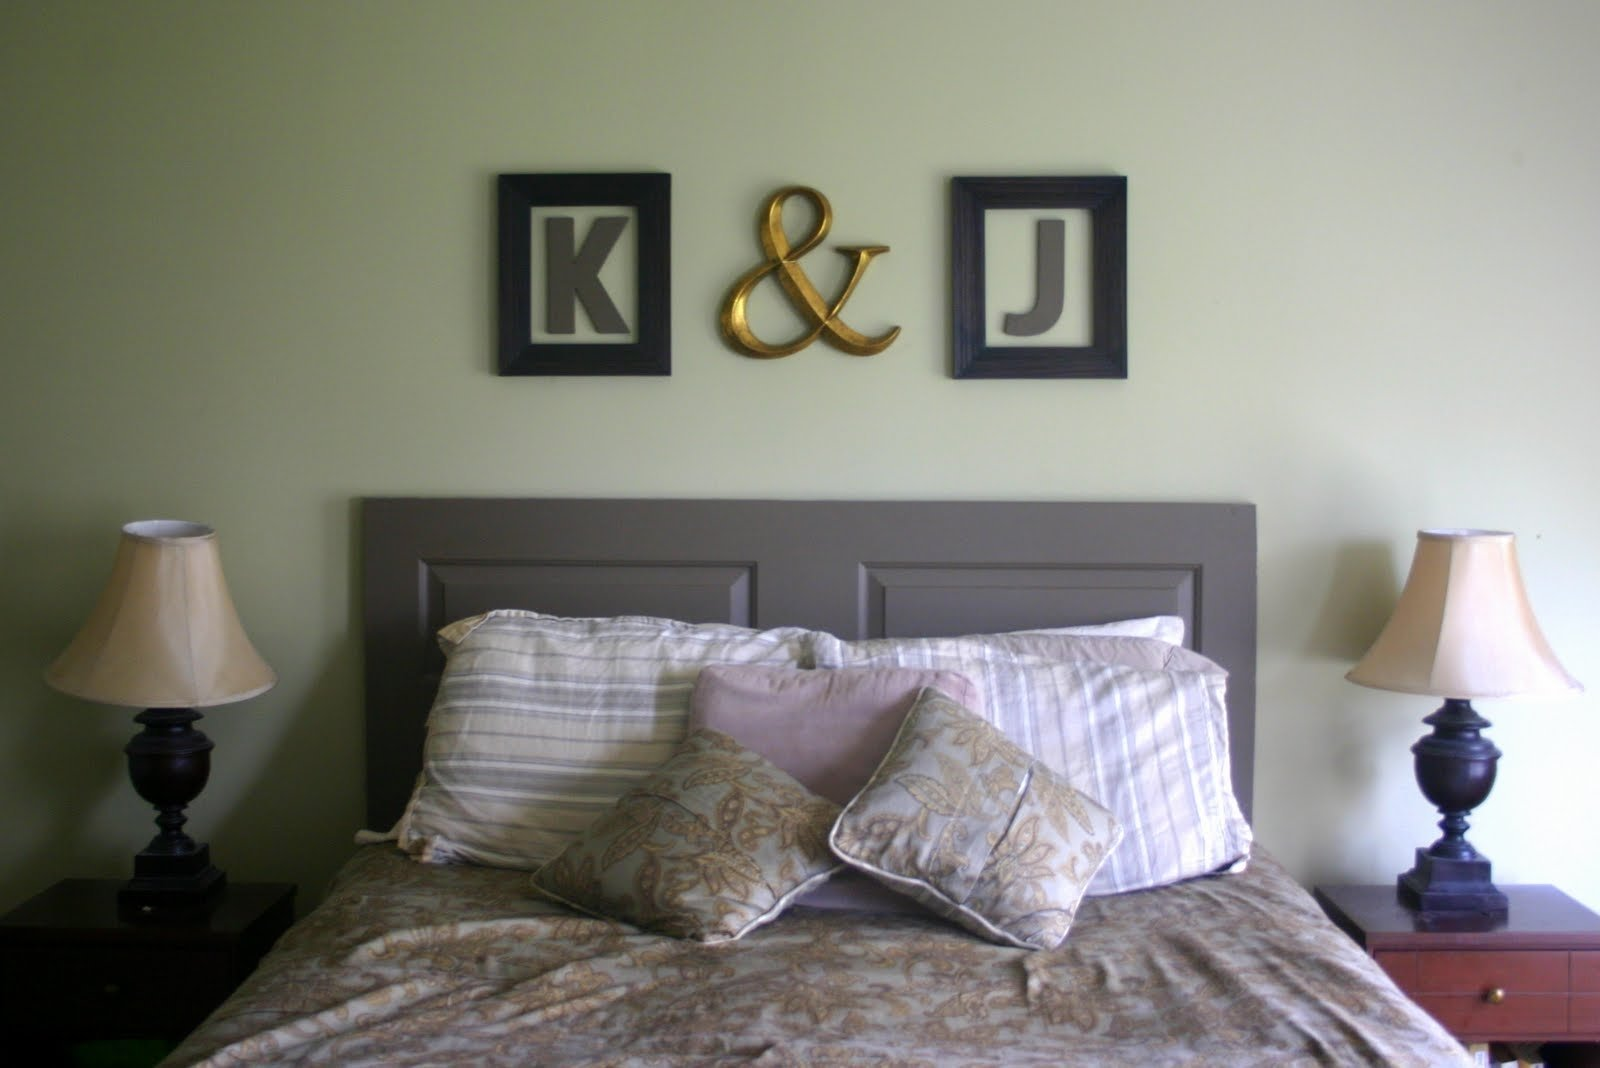 10 Attractive Do It Yourself Headboard Ideas diy headboards east coast creative blog 2021